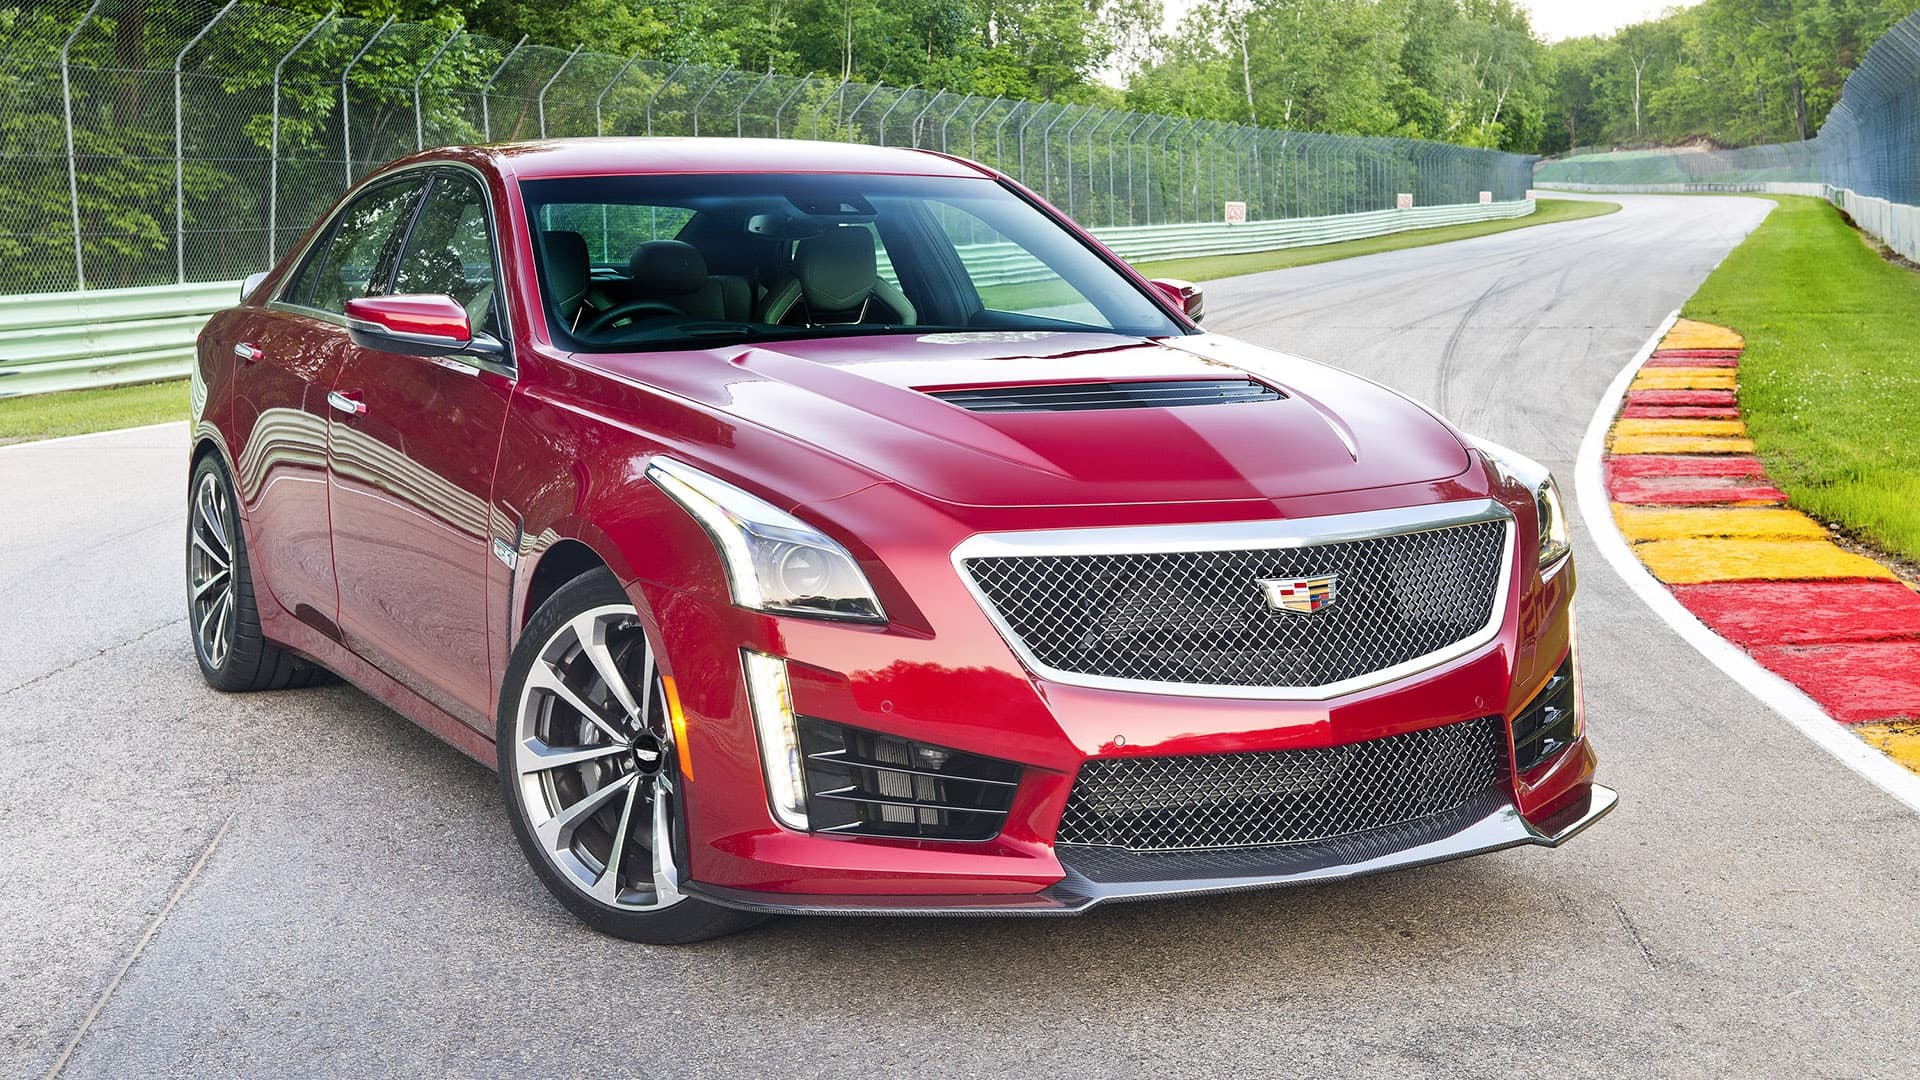 front red 2016 Cadillac CTS-V High Resolution wallpaper